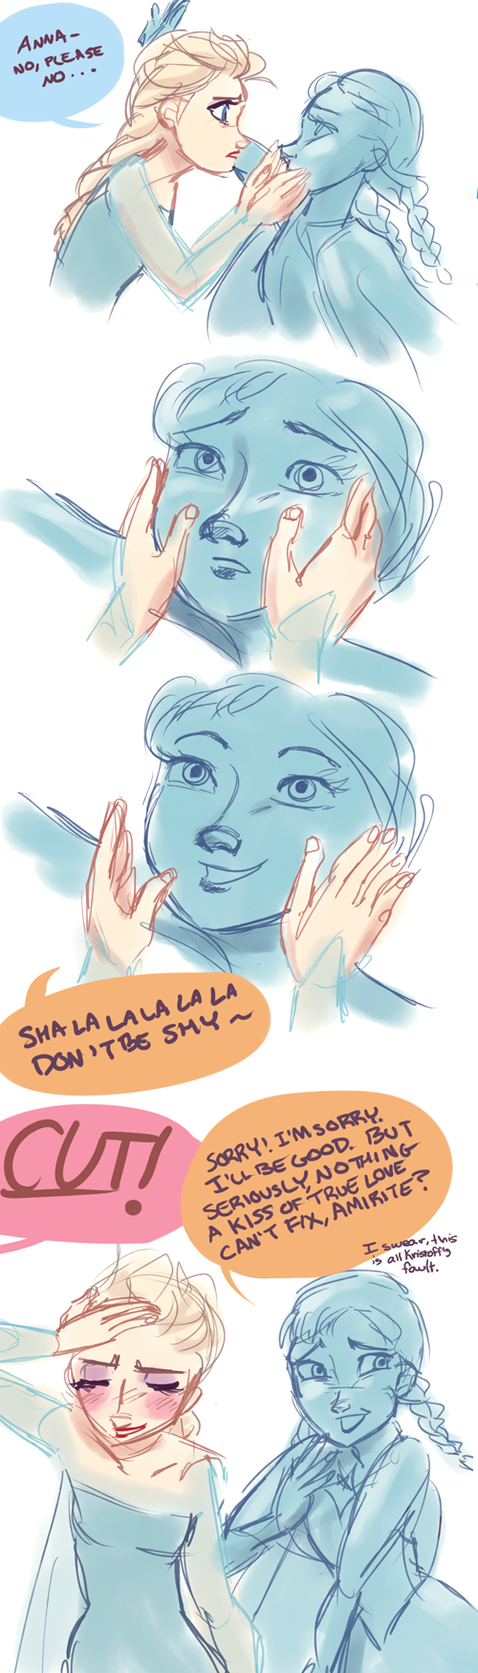 Frozen Actor!AU- Ruining the Moment by maybelletea